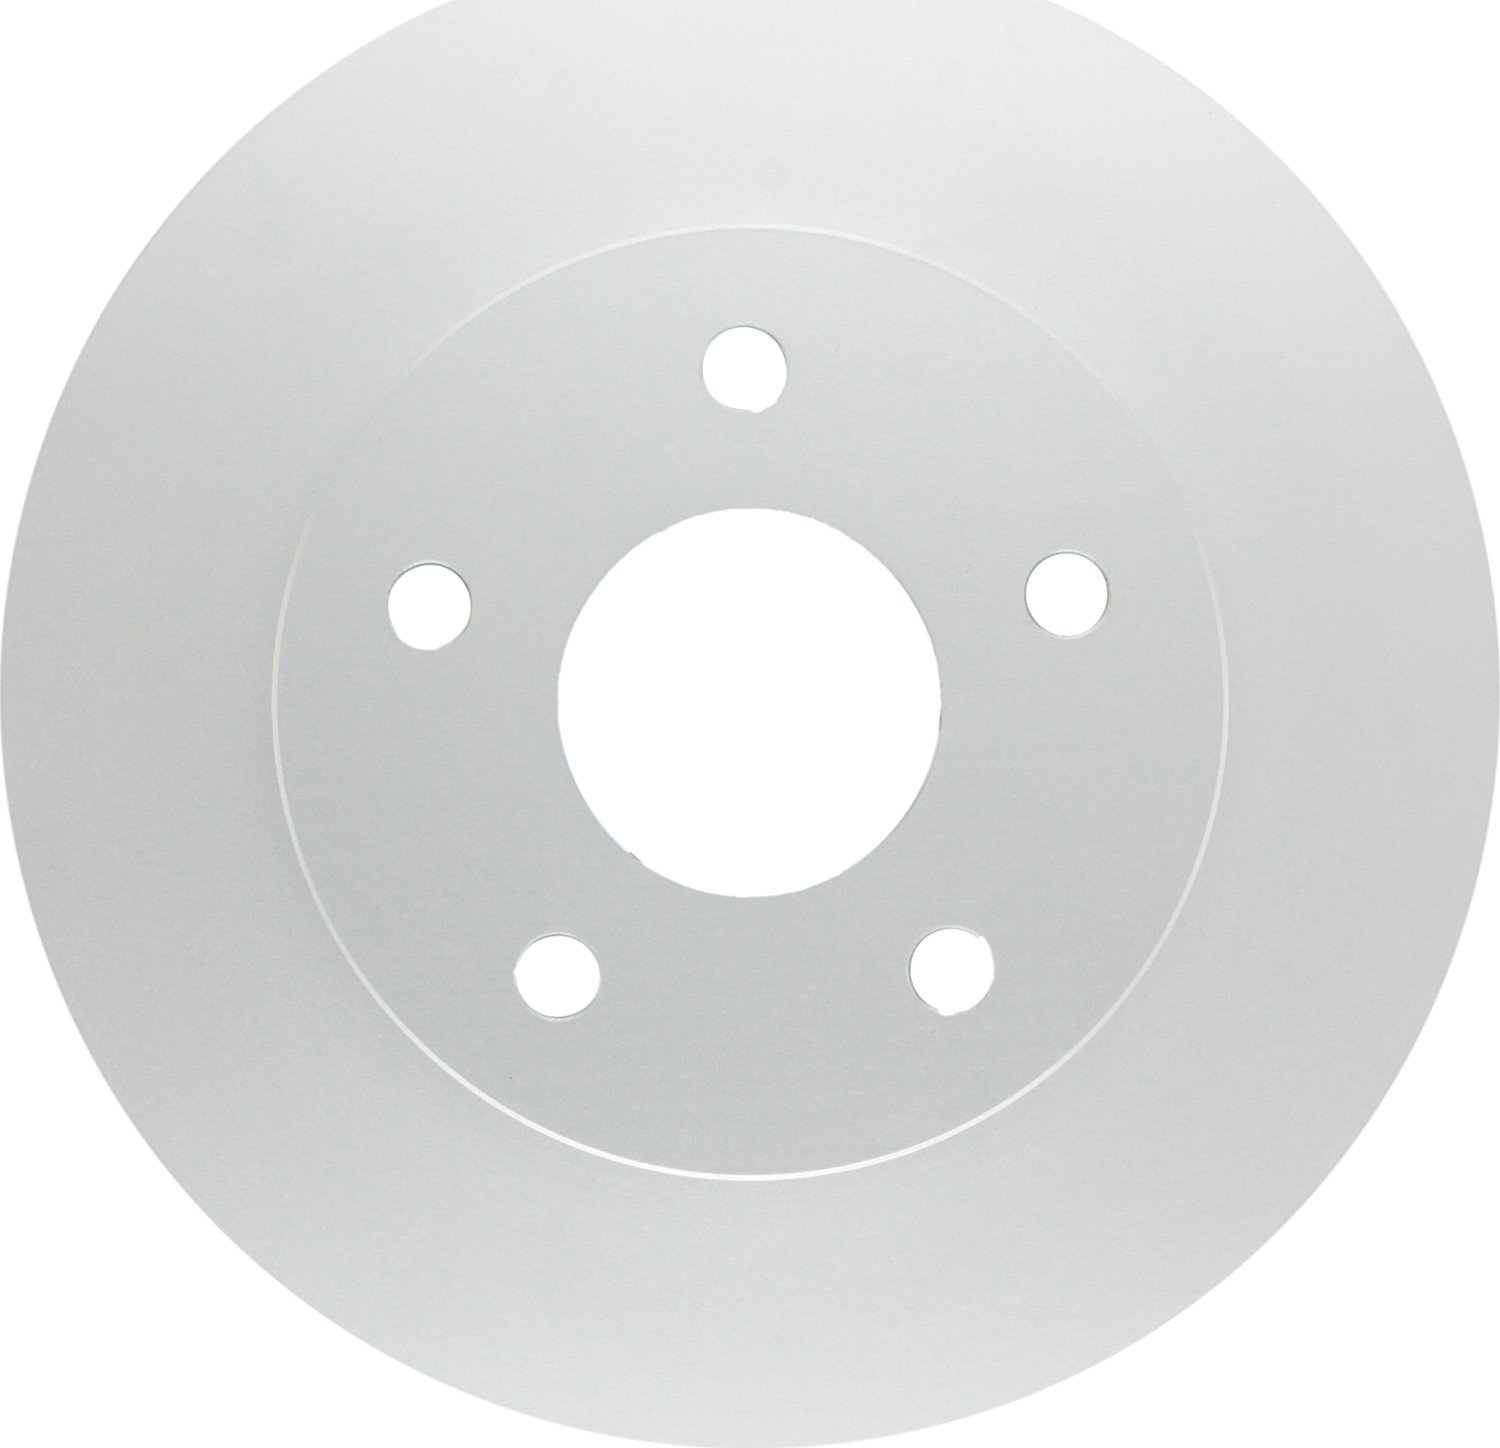 Bosch 16010140 QuietCast Premium Disc Brake Rotor For 1999-2004 Jeep Grand Cherokee; Front